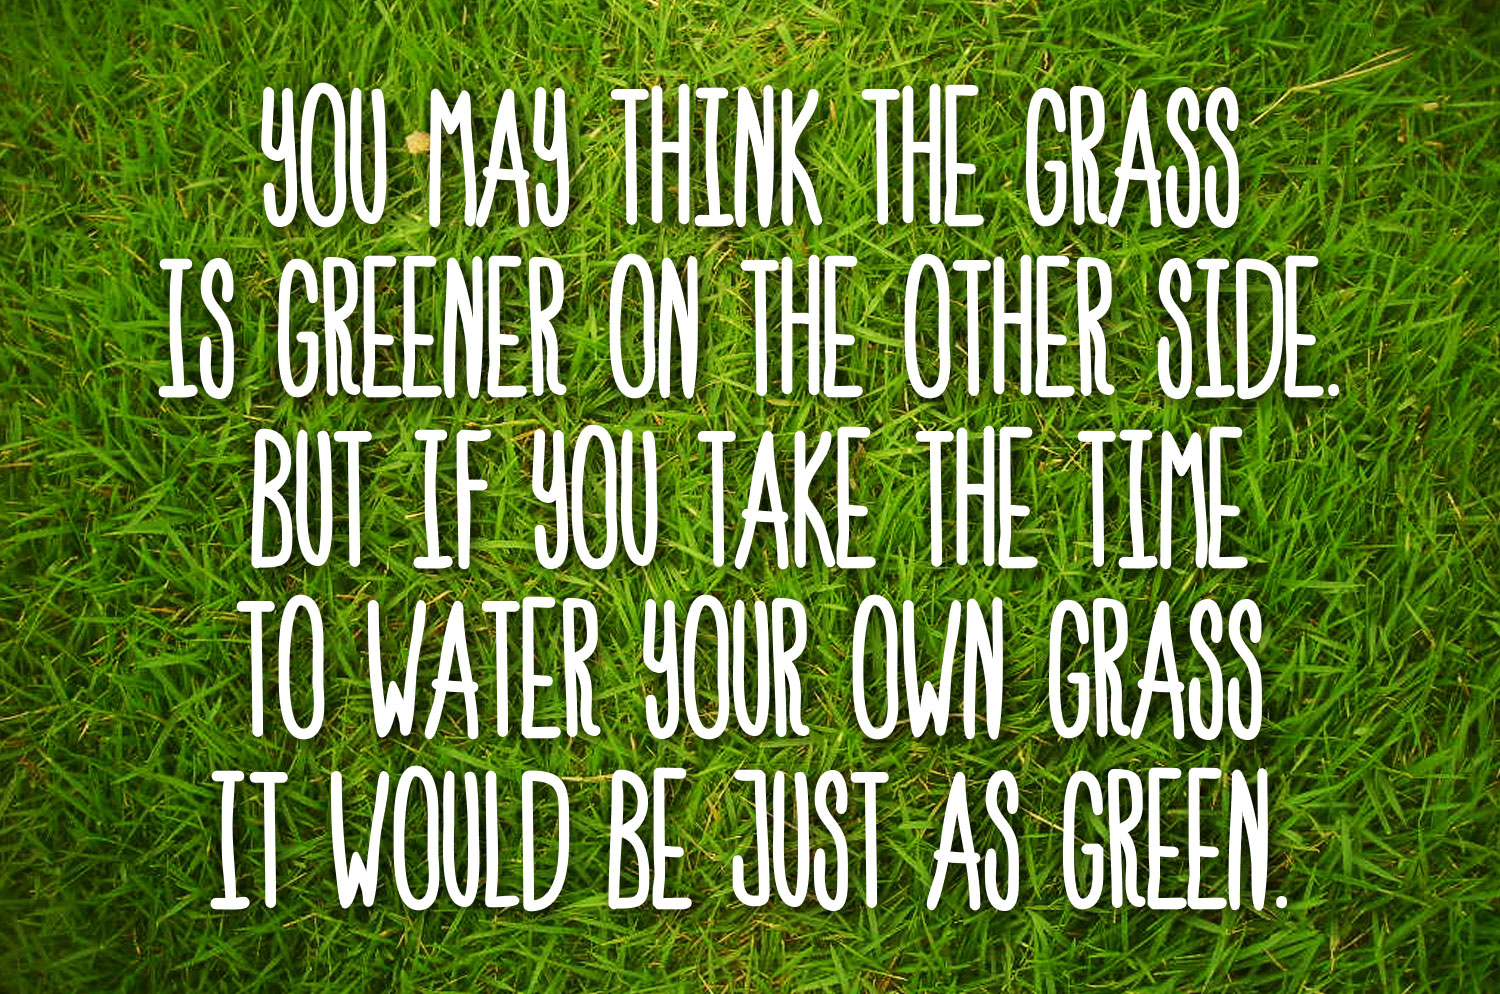 Grass Is Always Greener Quotes: Grass Greener On The Other Side Quotes. QuotesGram